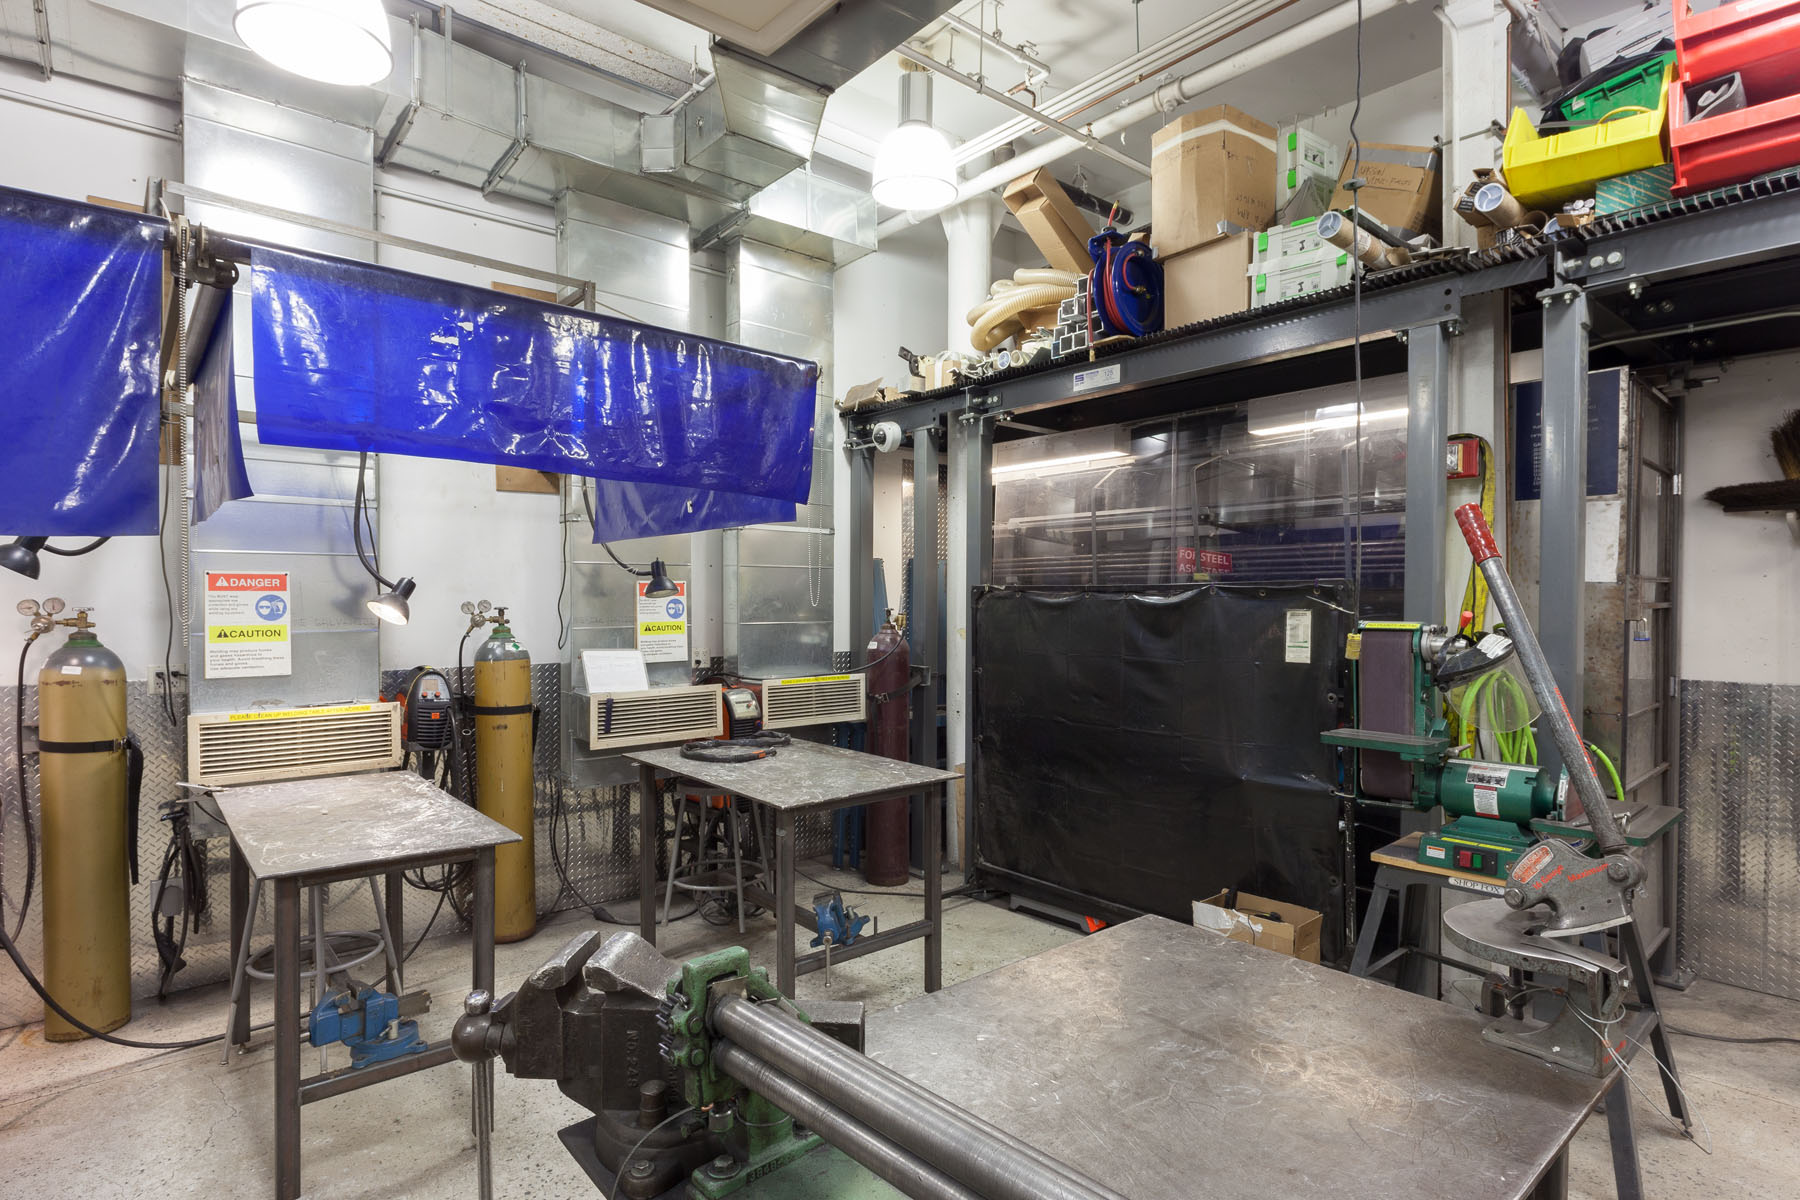 Metalshop Facilities Bfa Fine Arts Department Sva Nyc